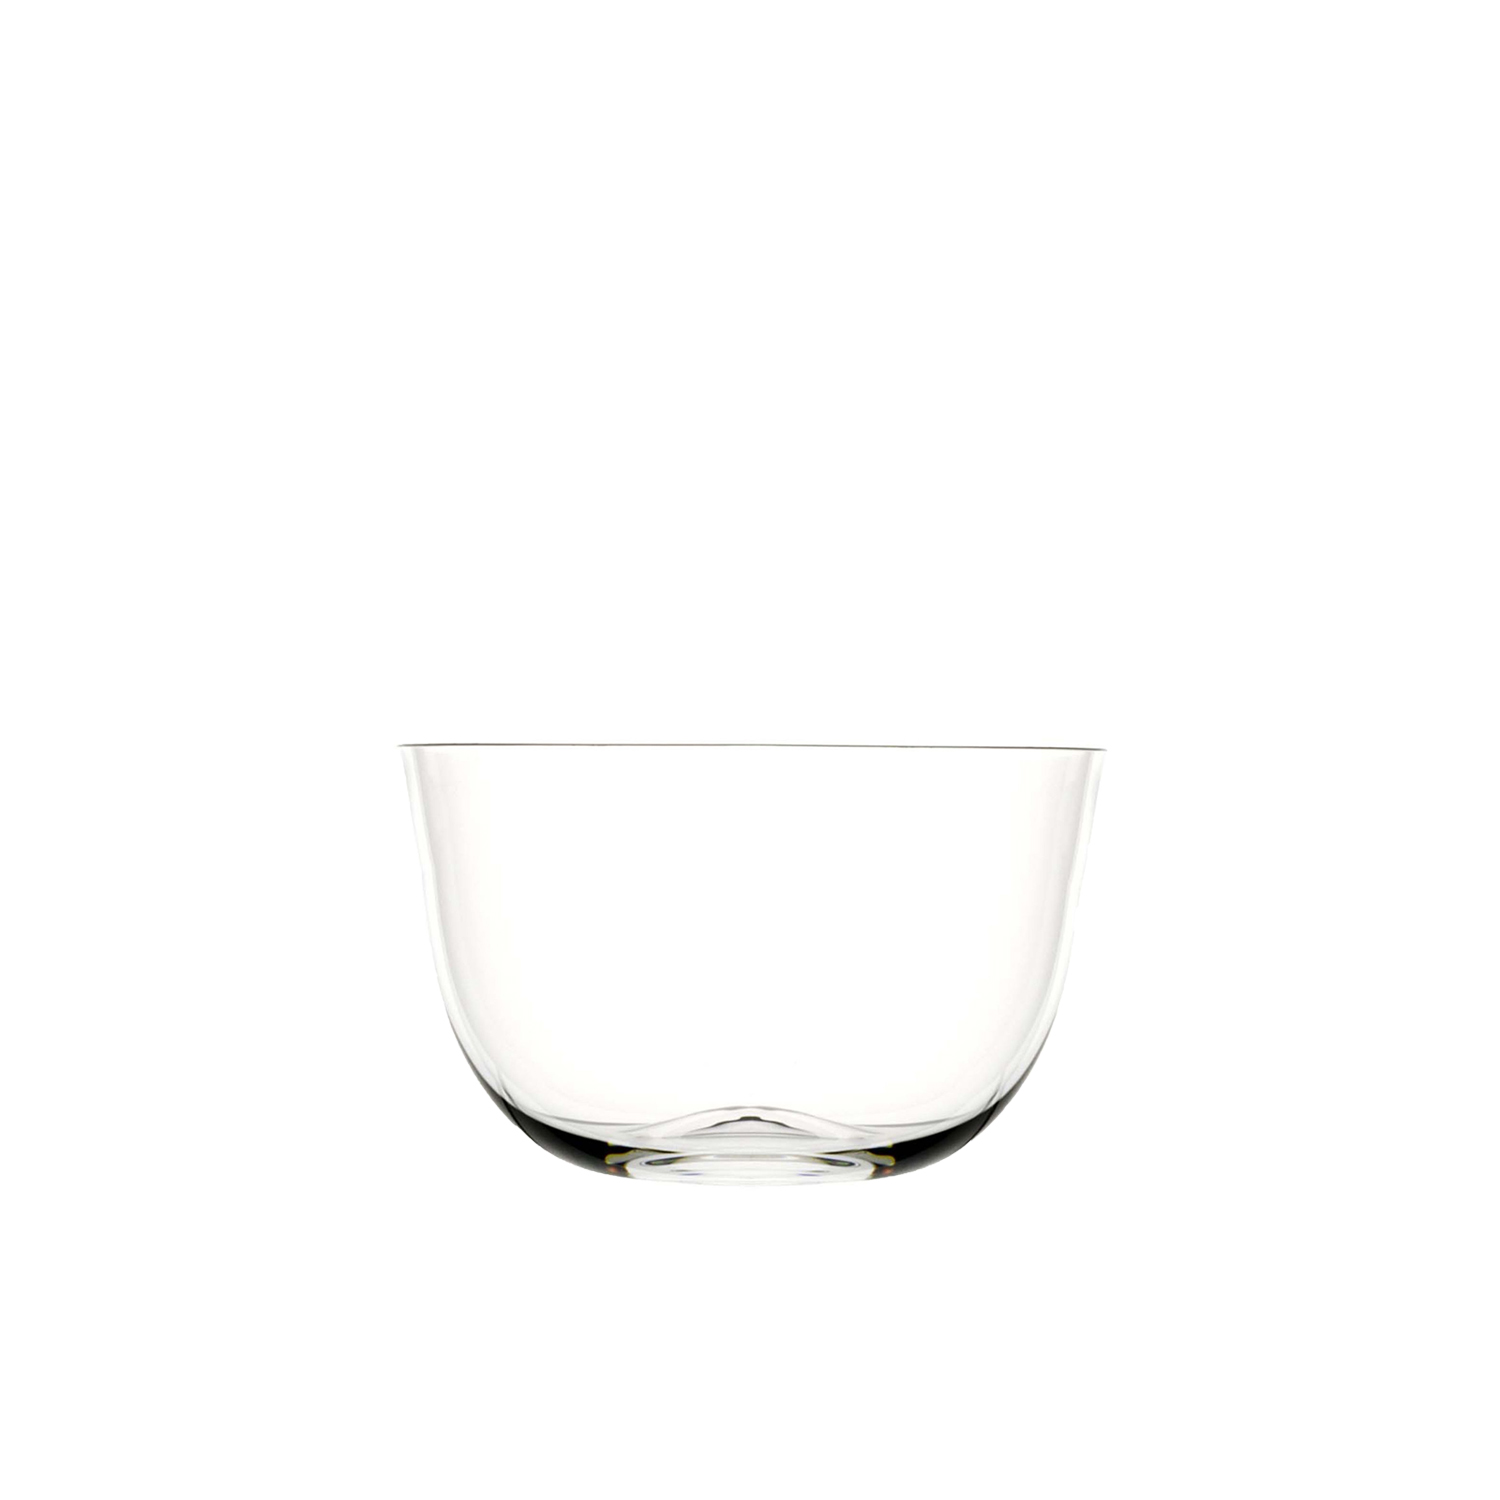 Drinking Set No.238 Sugar Dish - Set of 6 - The perfectly flowing contours of these original Josef Hoffmann shapes make this muslin glass series a classic. This elegantly balanced stemware was designed by Hoffmann for Lobmeyr already in 1917. The material - very fine (muslin) glass, mouth-blown in wooden moulds provides perfect elegance for these glasses.  | Matter of Stuff